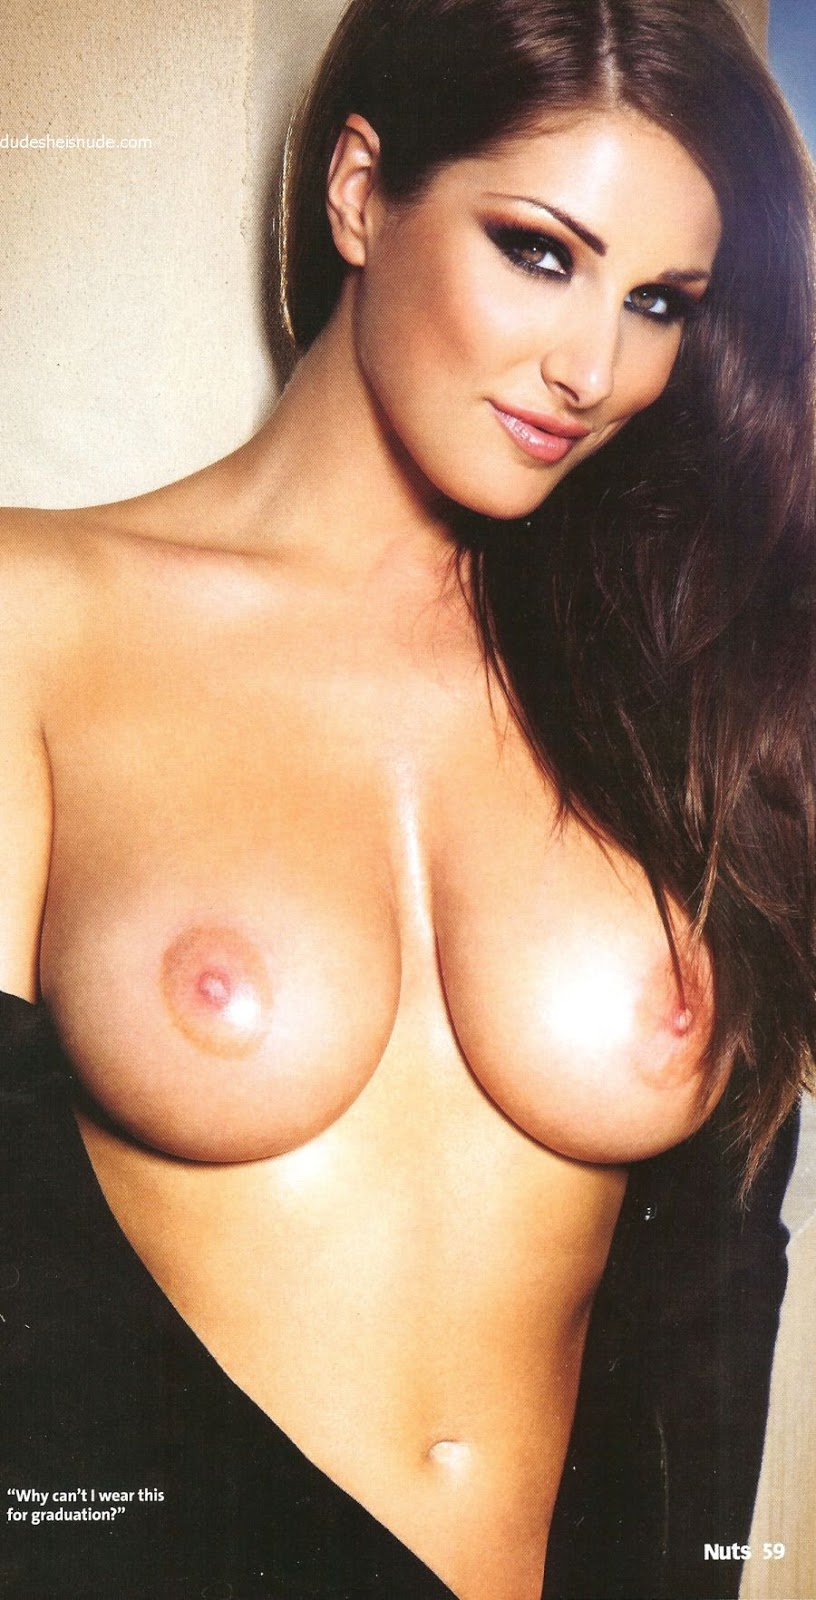 Katrina kaif nude boobs sucked remarkable, rather